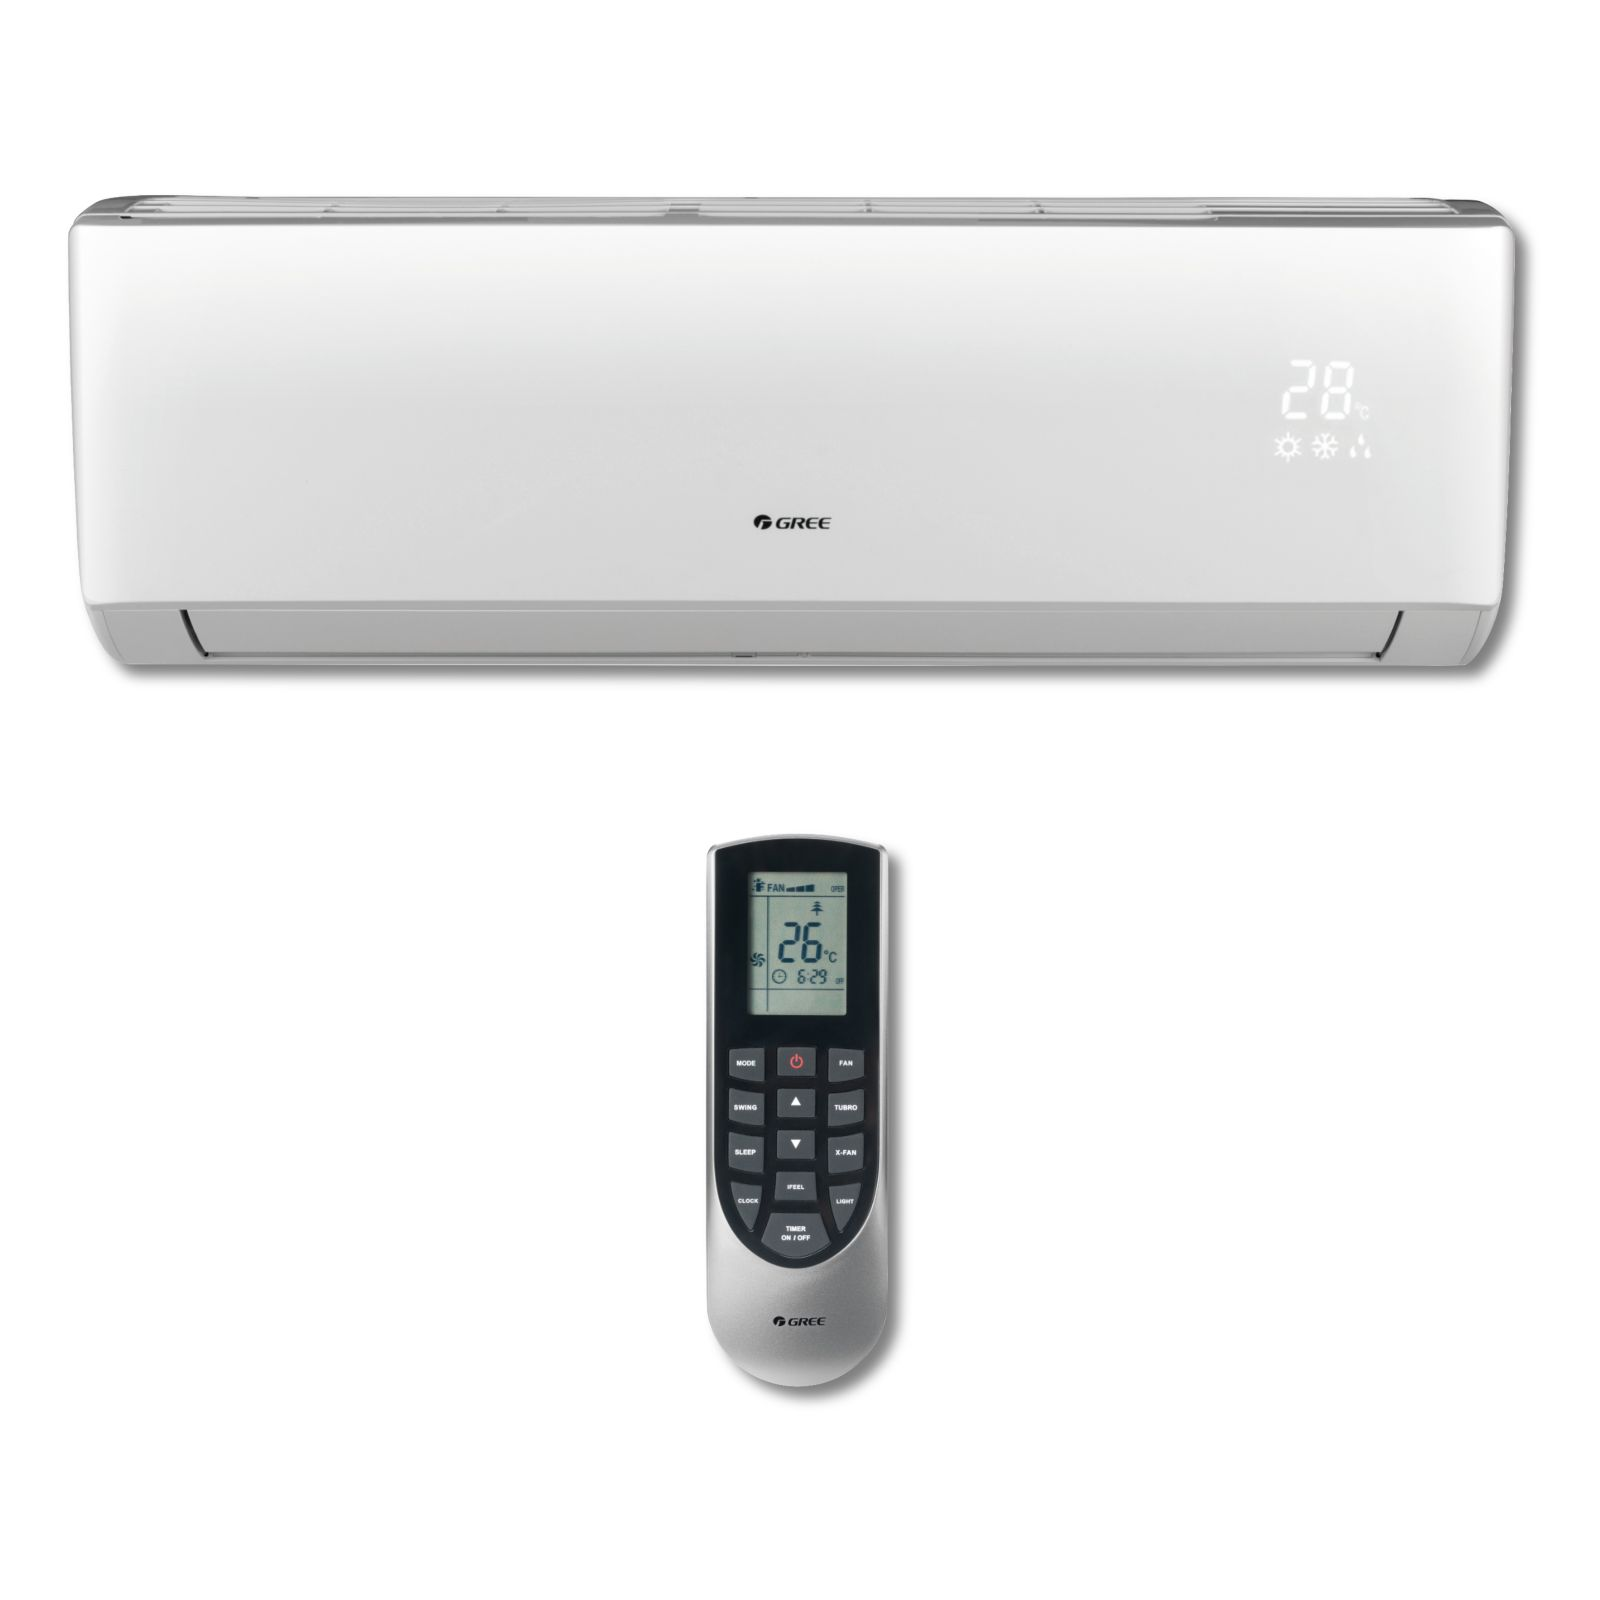 GREE VIR18HP230V1AH - Vireo 18,000 BTU Wall Mounted Inverter Heat Pump Indoor Unit